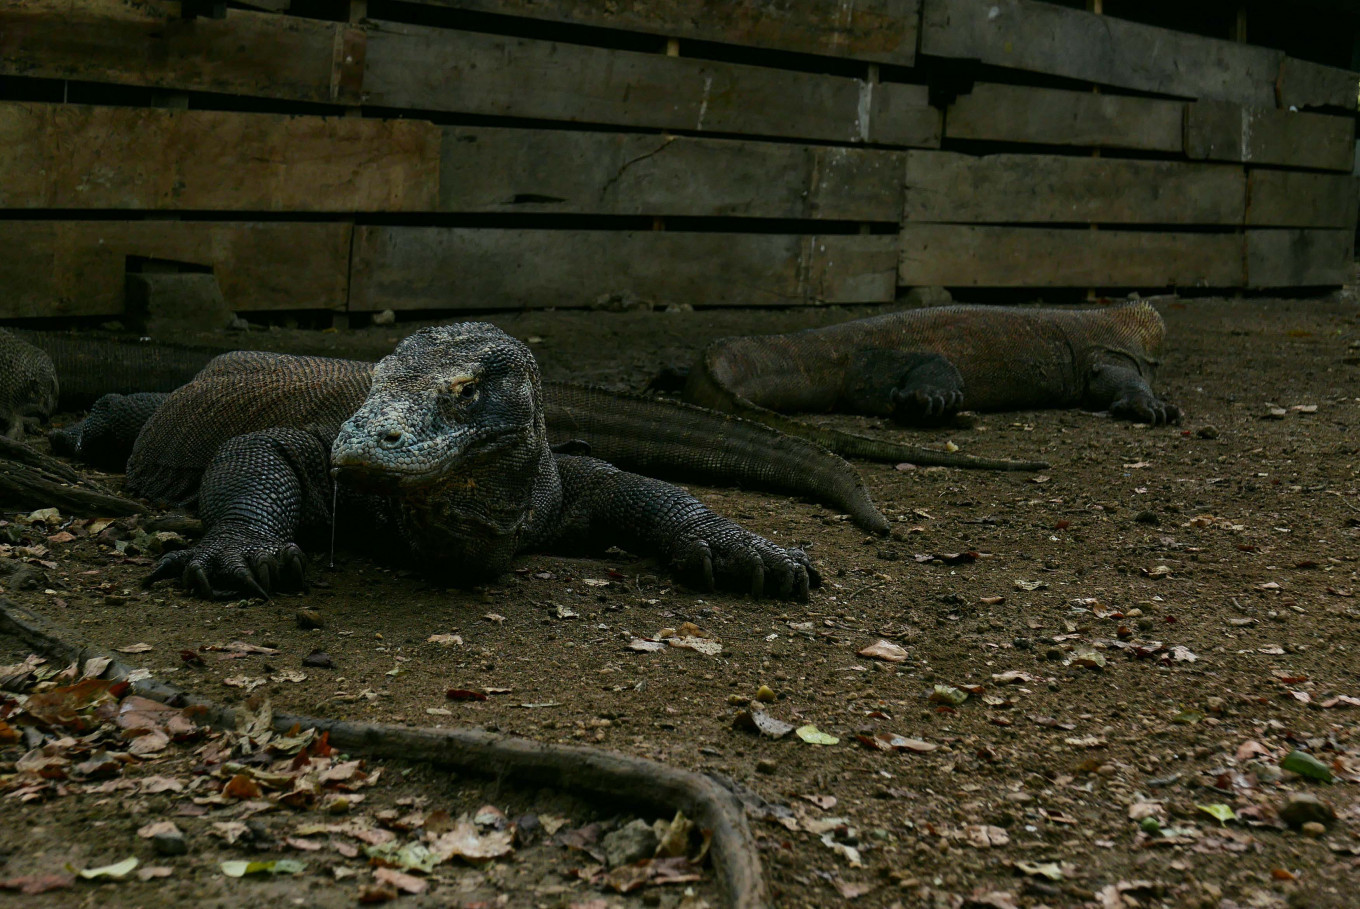 No 'Jurassic Park': NTT administration says Rinca Island project is ecotourism